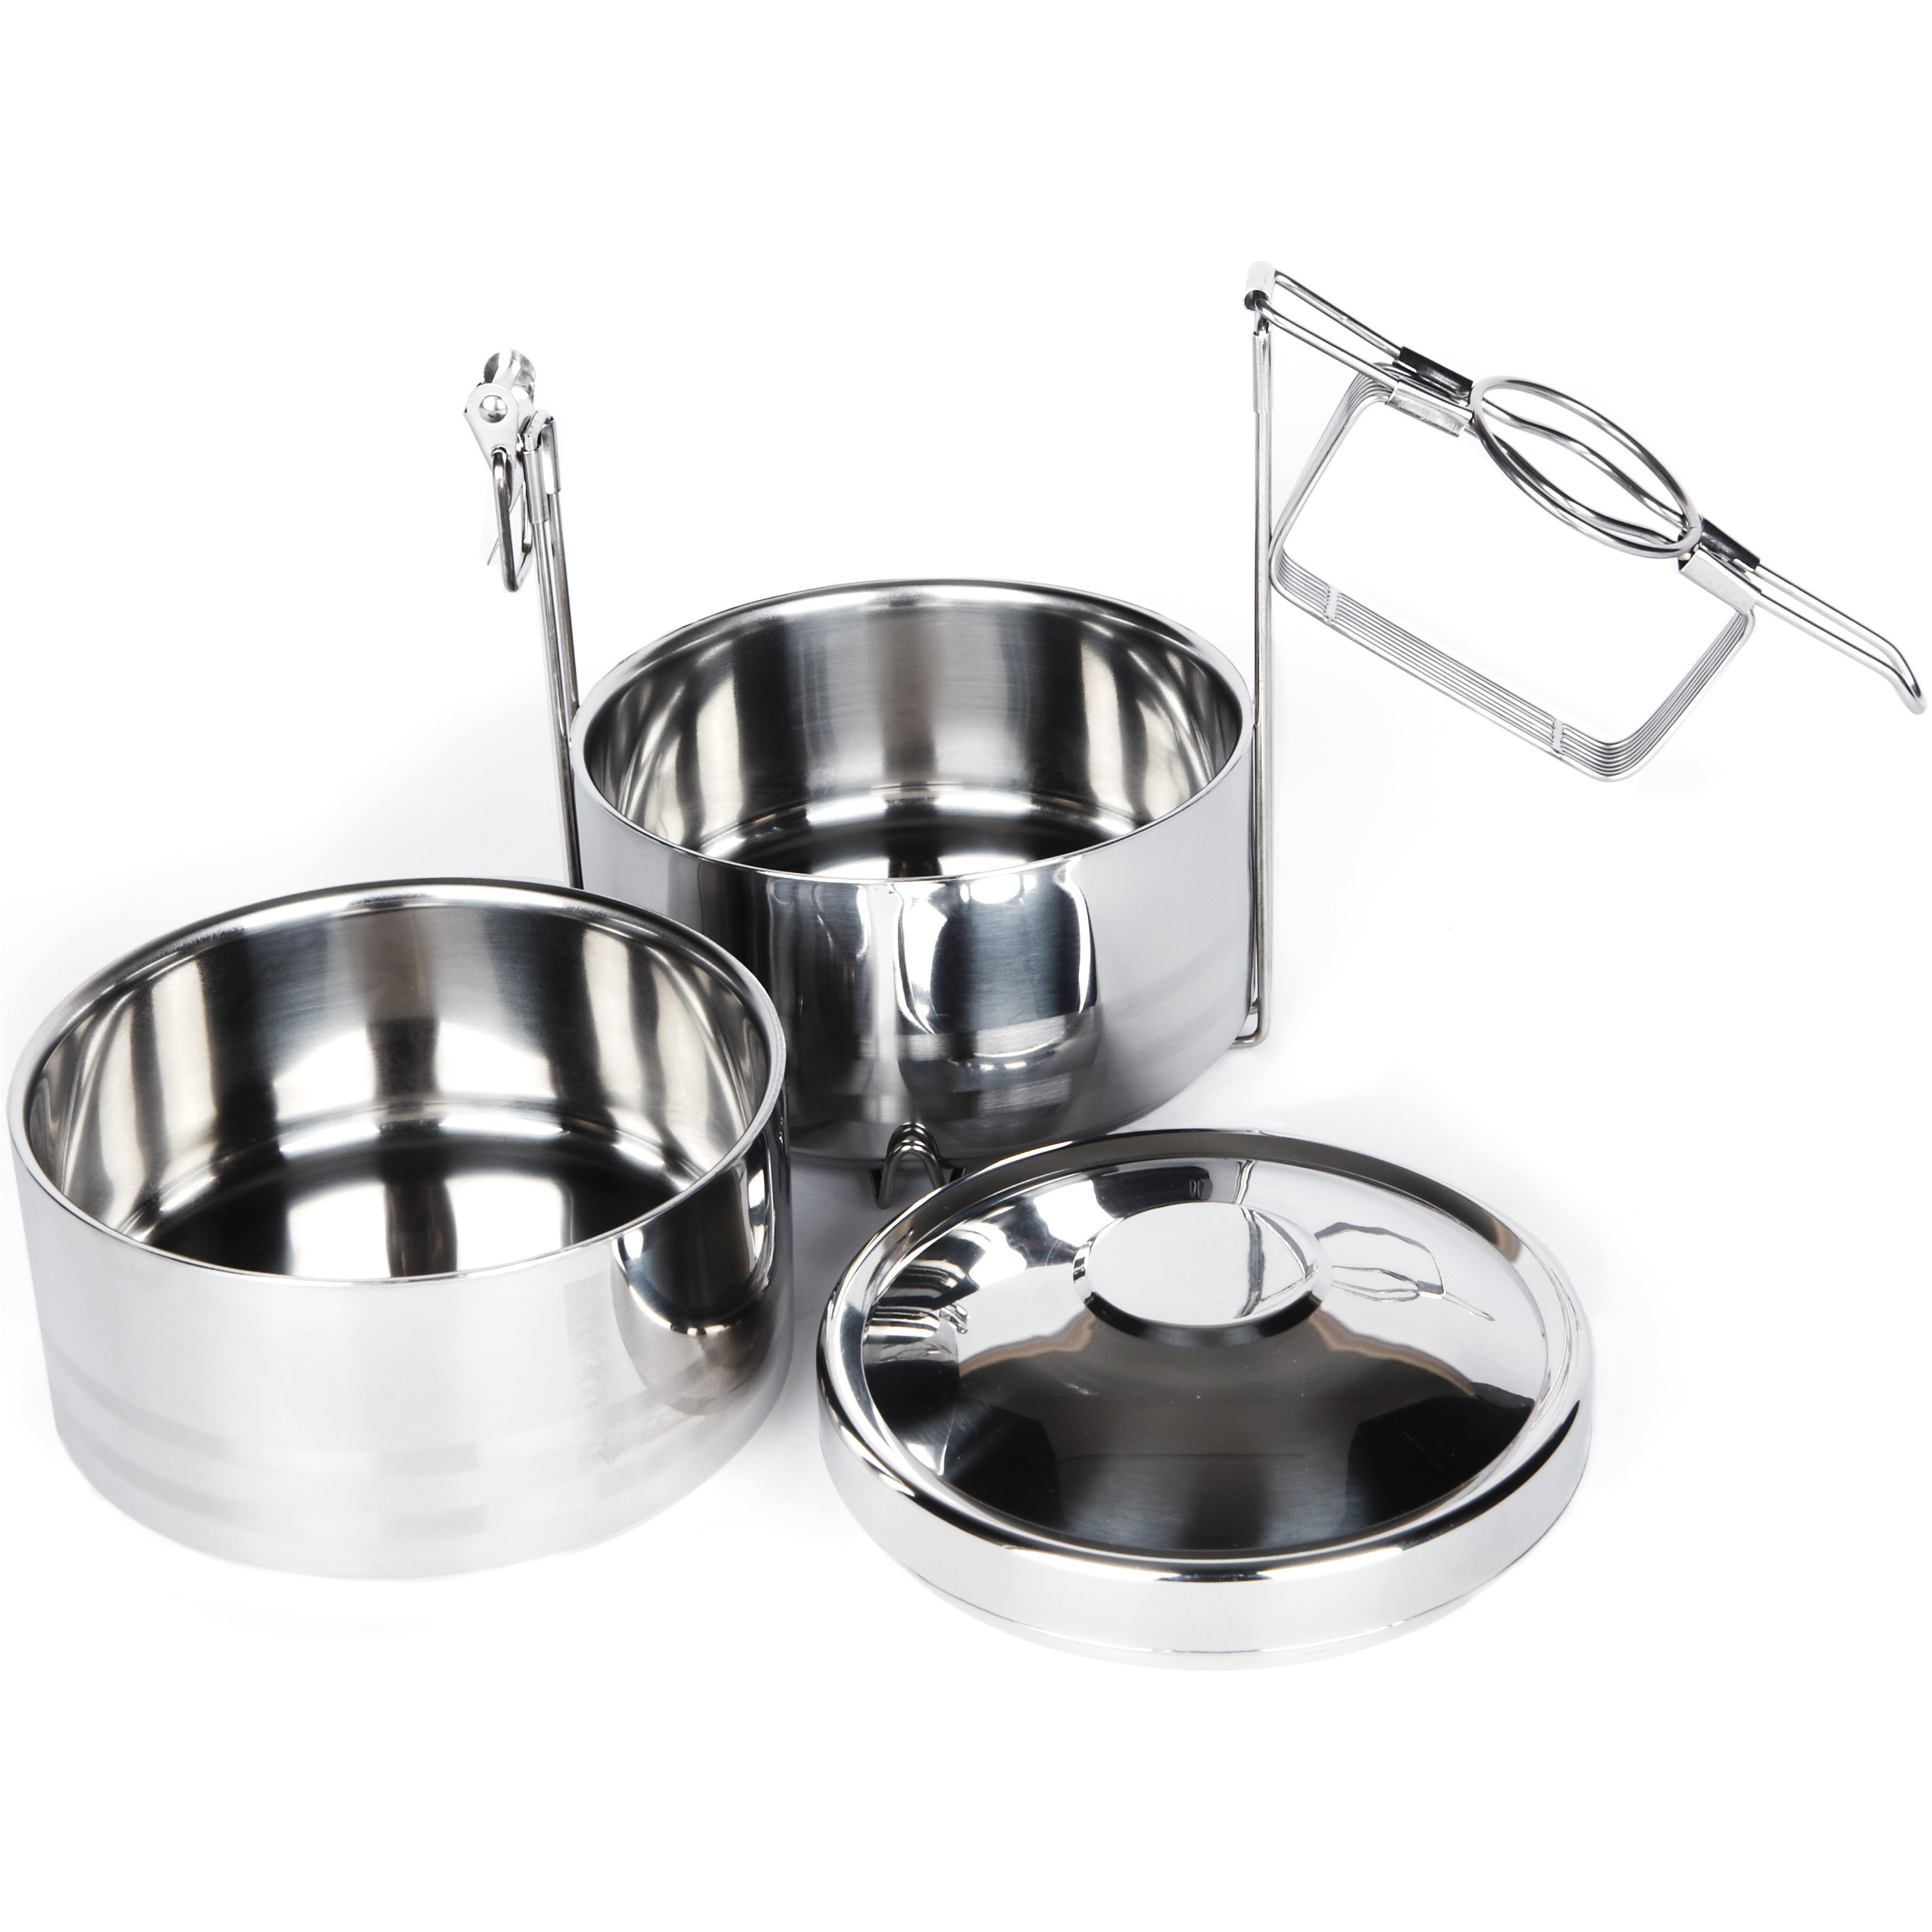 Onyx 18/10 Stainless Steel 2-Layer Tiffin Food Storage Container